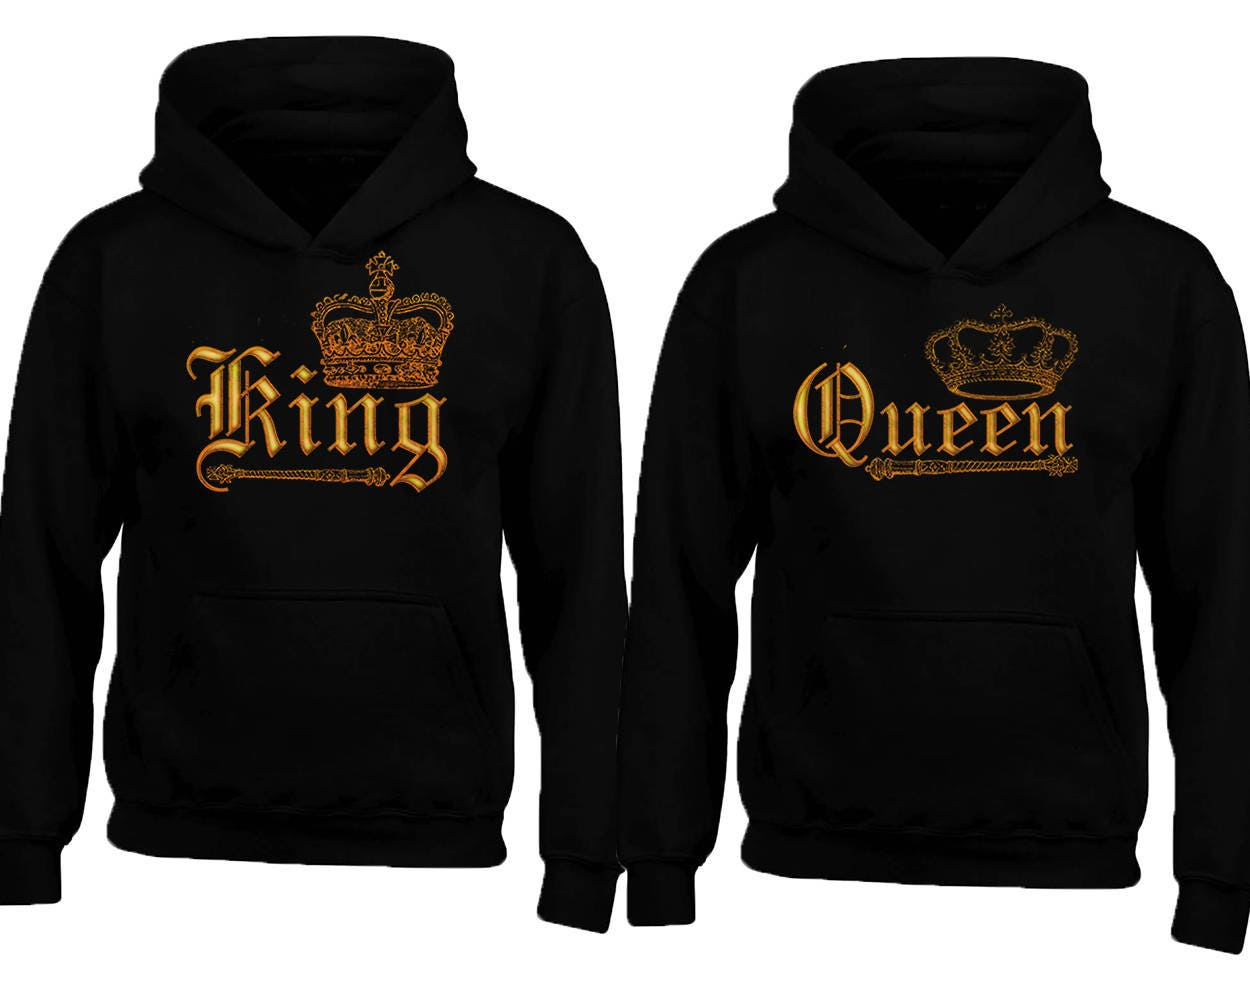 wild king queen gold soul mate couple hoodie sweaters cartoon. Black Bedroom Furniture Sets. Home Design Ideas